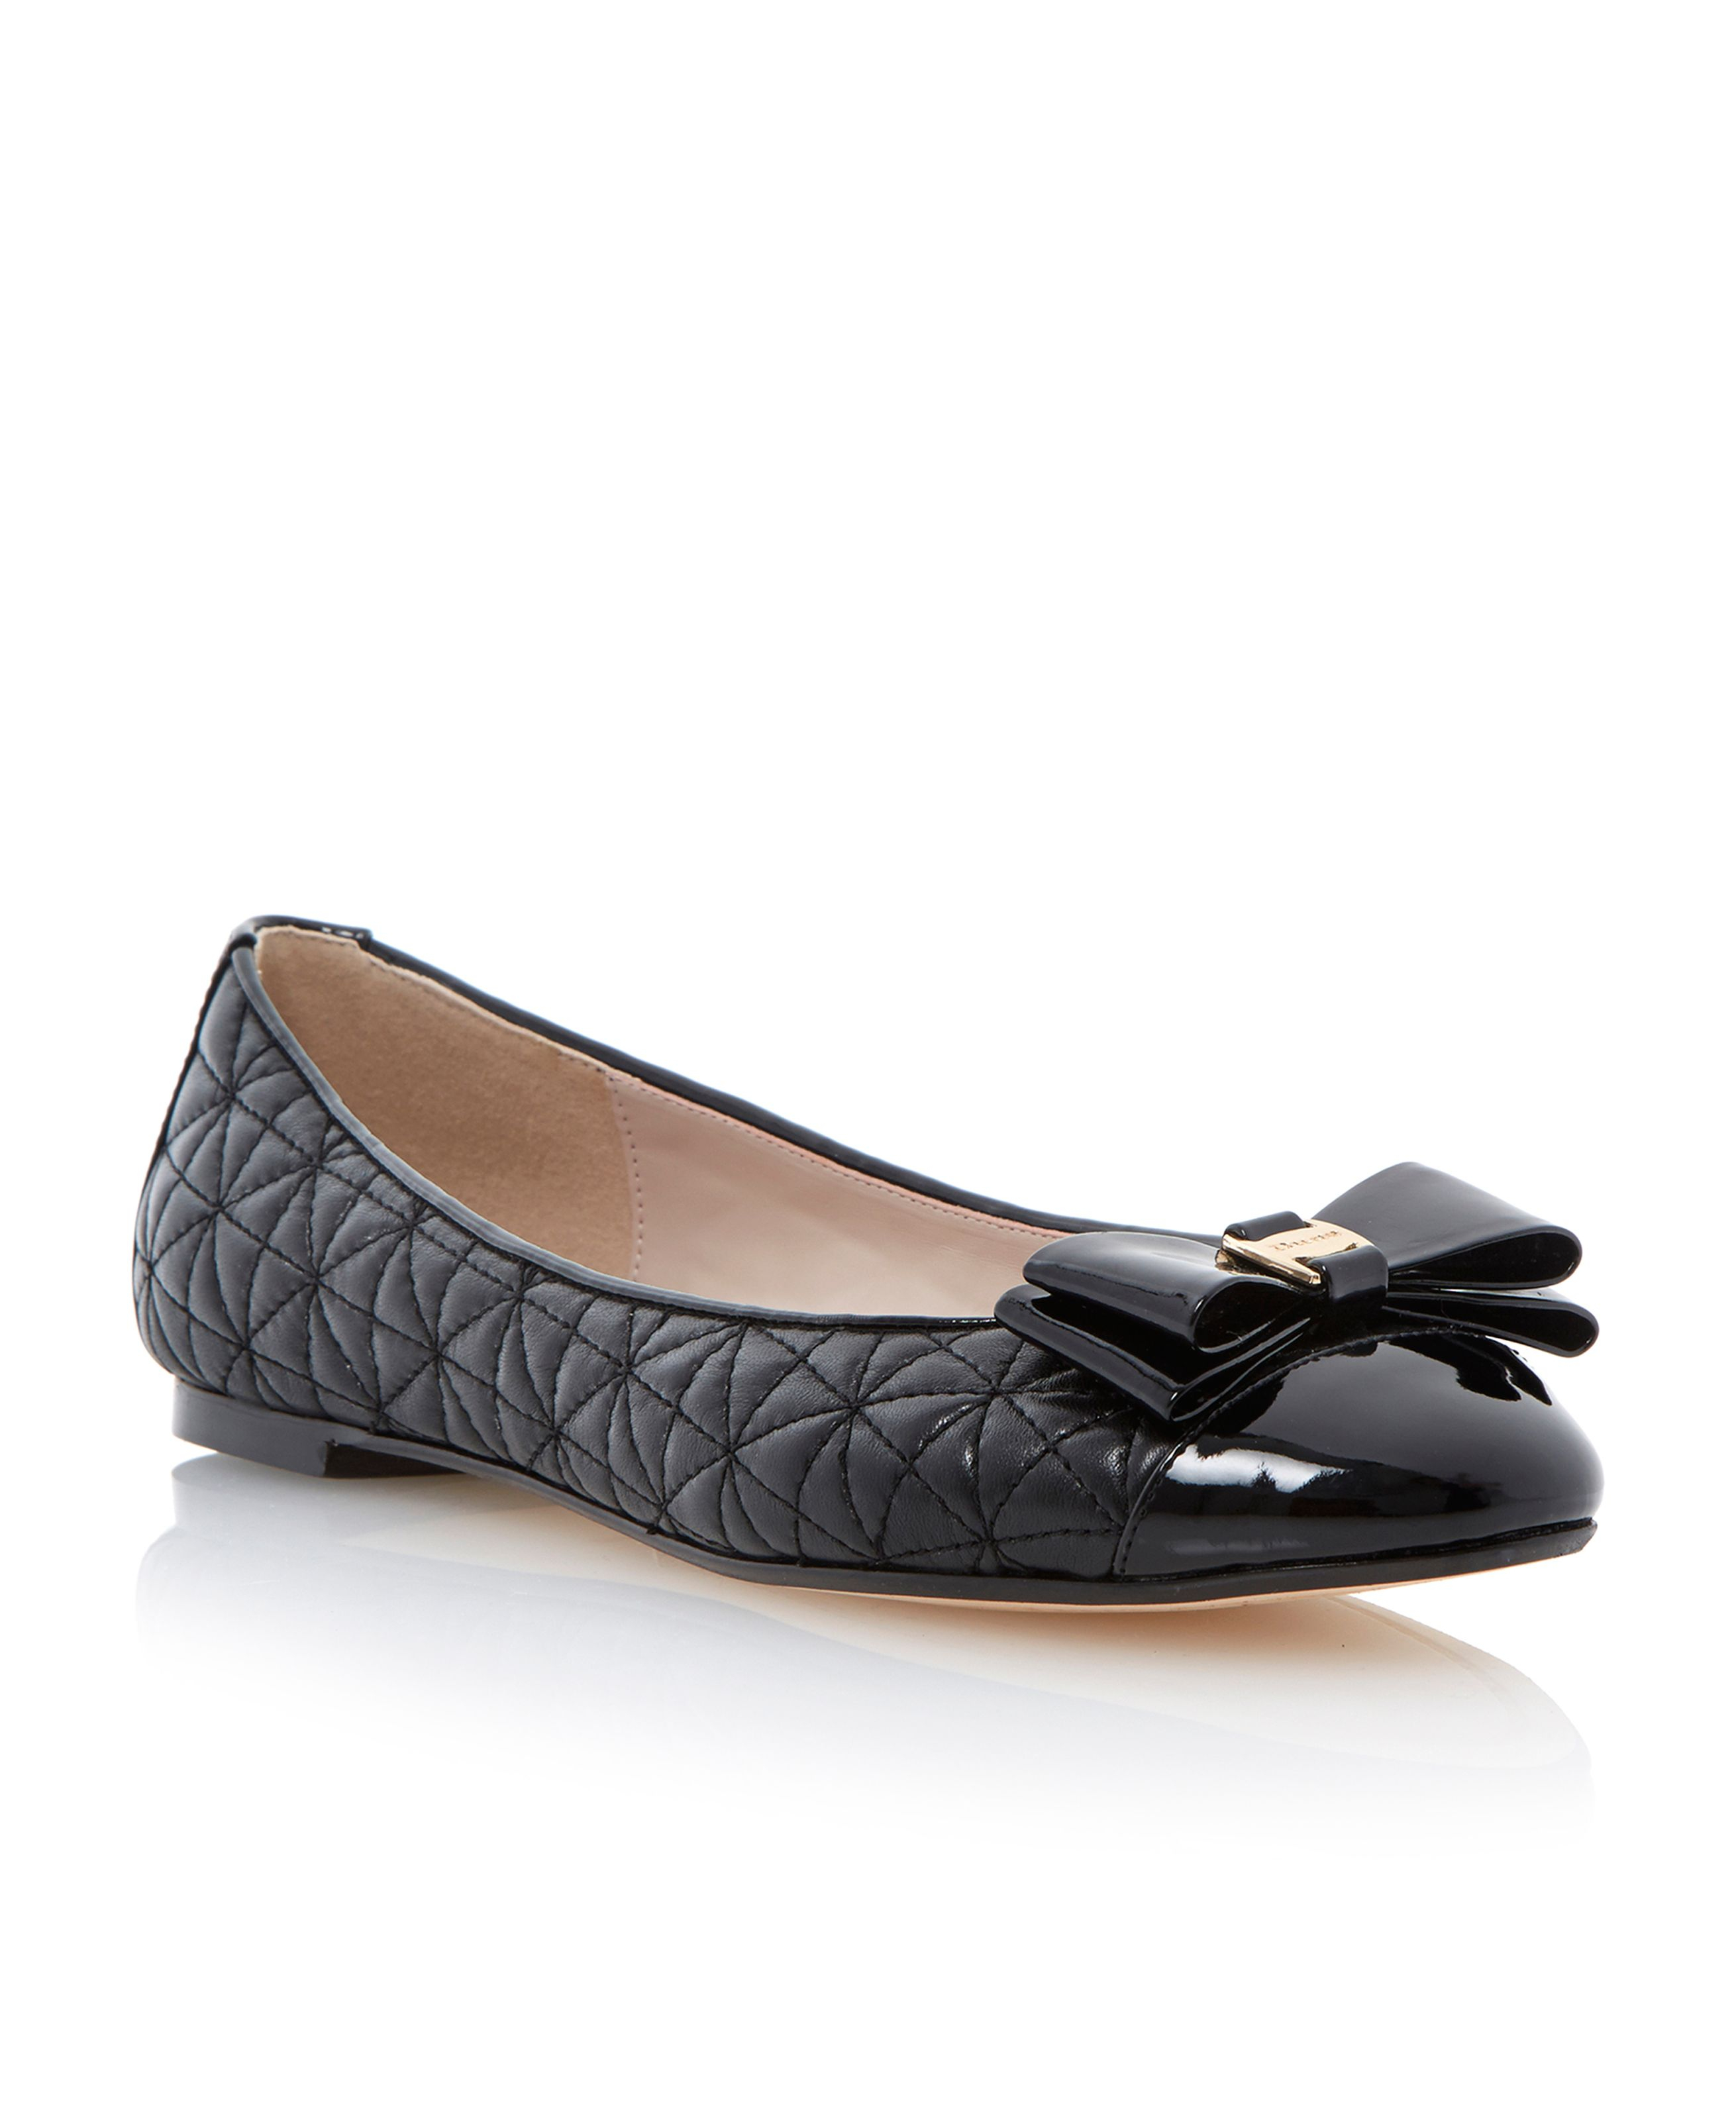 Dune Mittle Leather Flat Round Toe Ballerina Shoes In Black (Black Leather)   Lyst